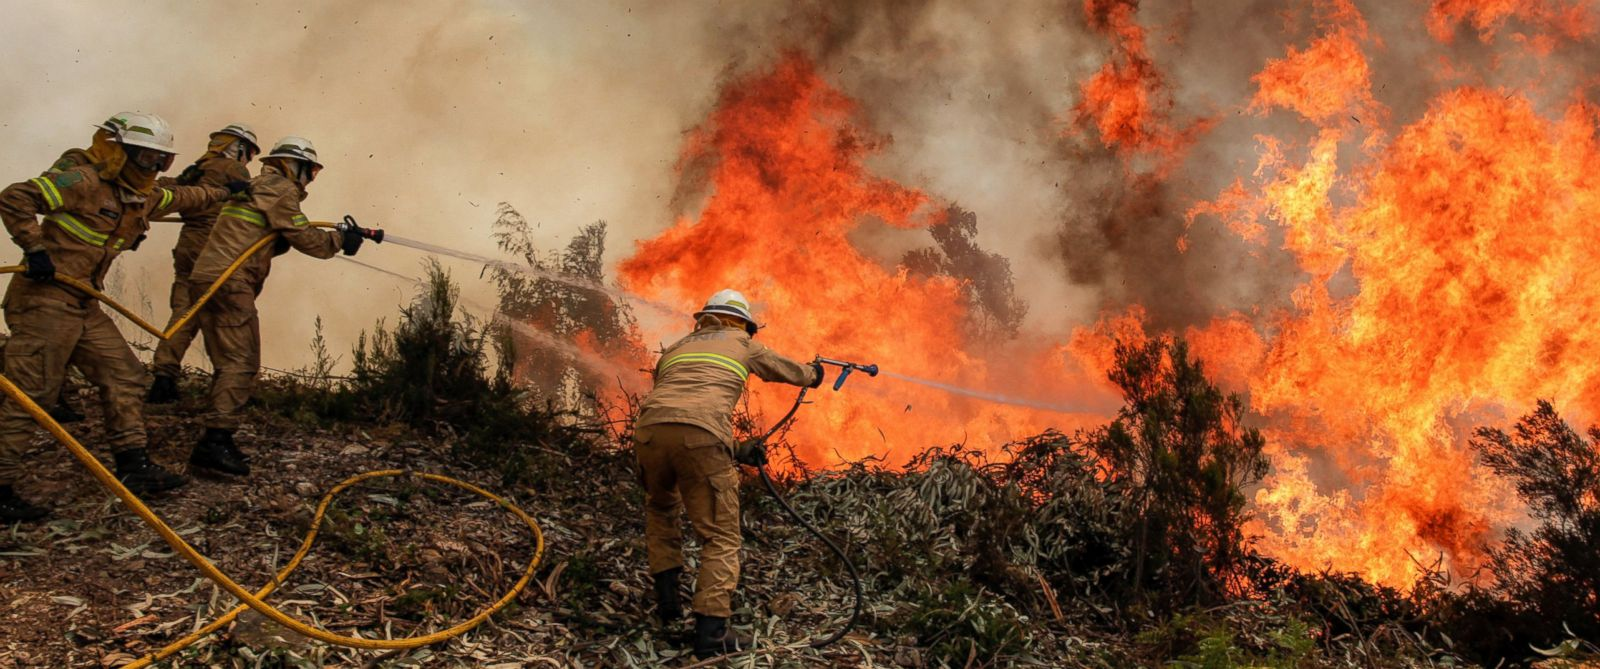 PHOTO: Portuguese Republican National Guard soldiers battle with a forest fire in Capela Sao Neitel, Alvaiazere, central Portugal, June 18, 2017.